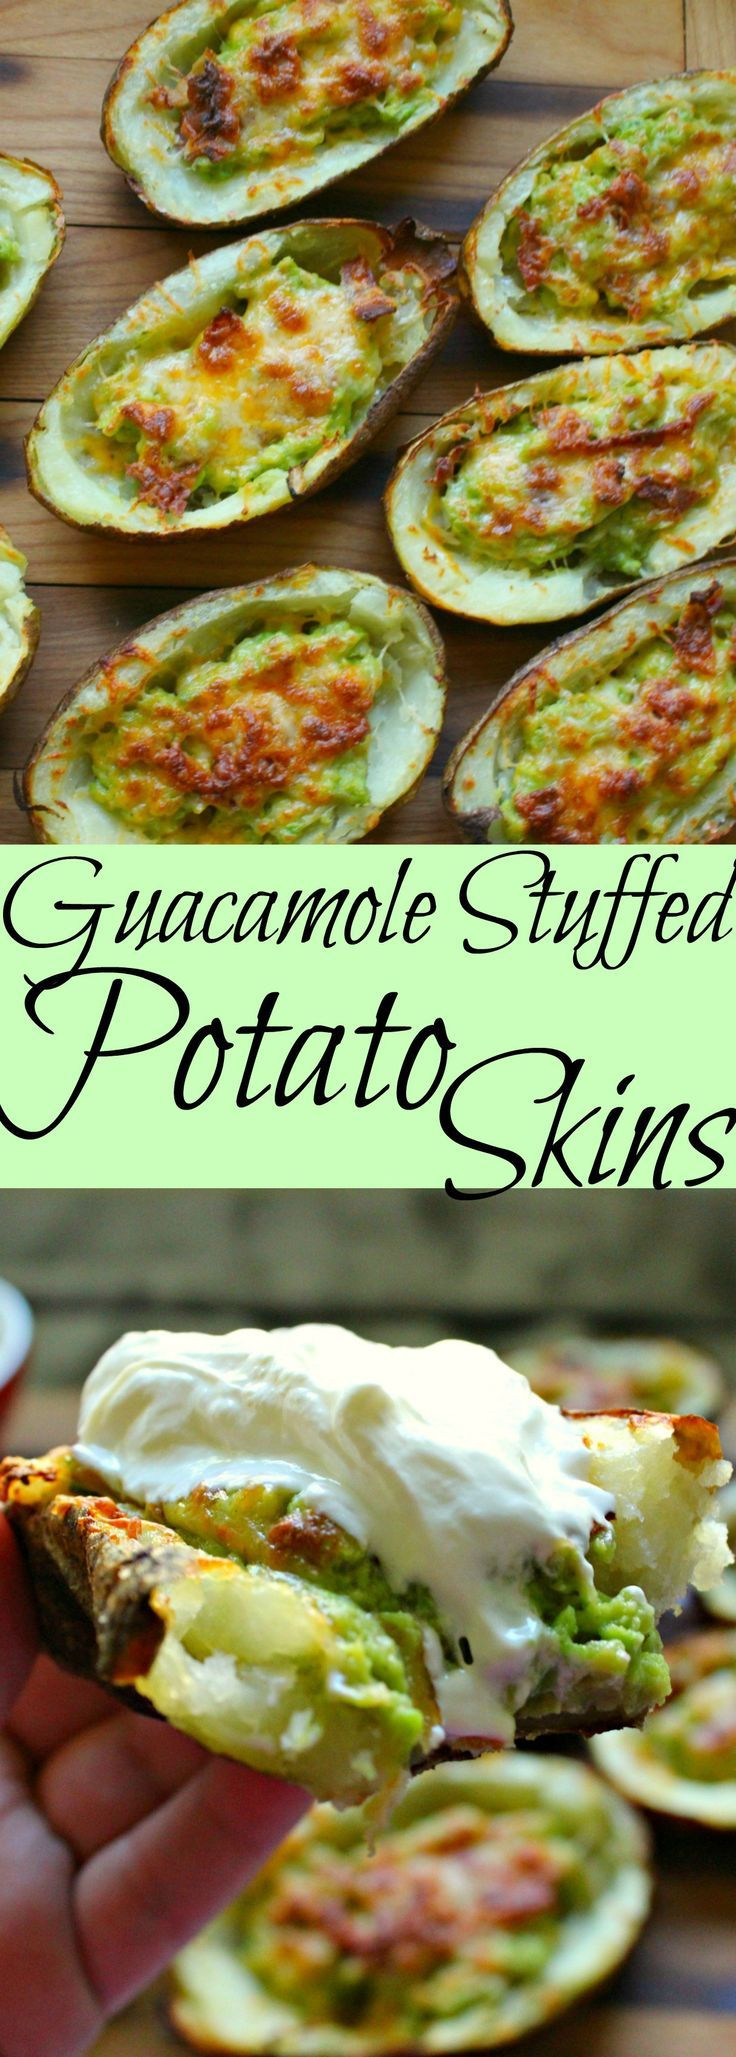 V - Guacamole Stuffed Potato Skins